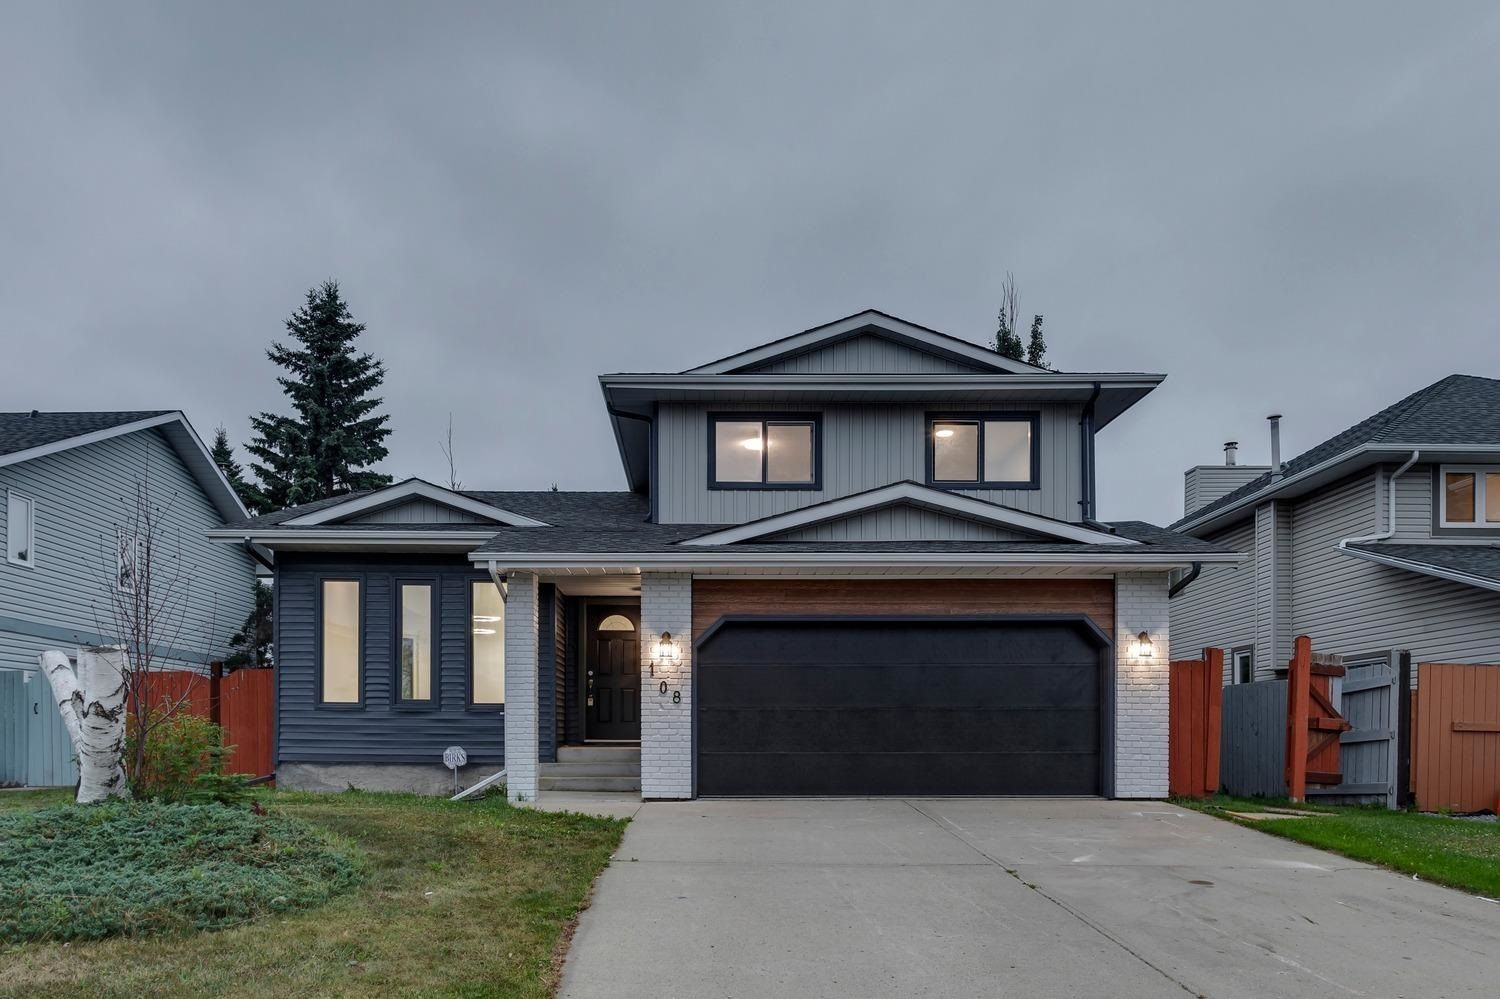 Main Photo: 108 RUNNING CREEK Road NW in Edmonton: Zone 16 House for sale : MLS®# E4255461